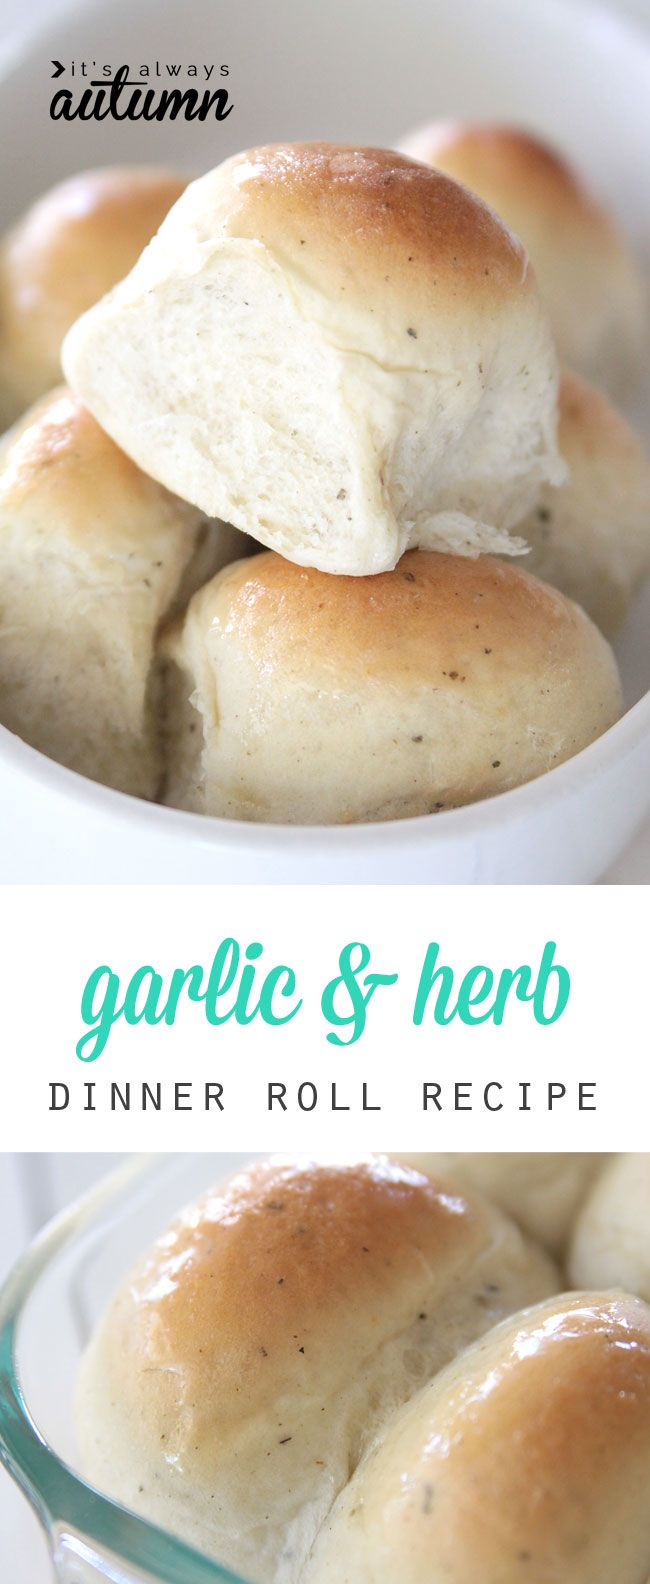 these garlic & herb dinner rolls are amazing! soft and light and flavorful and just plain good. great recipe & step by step photo